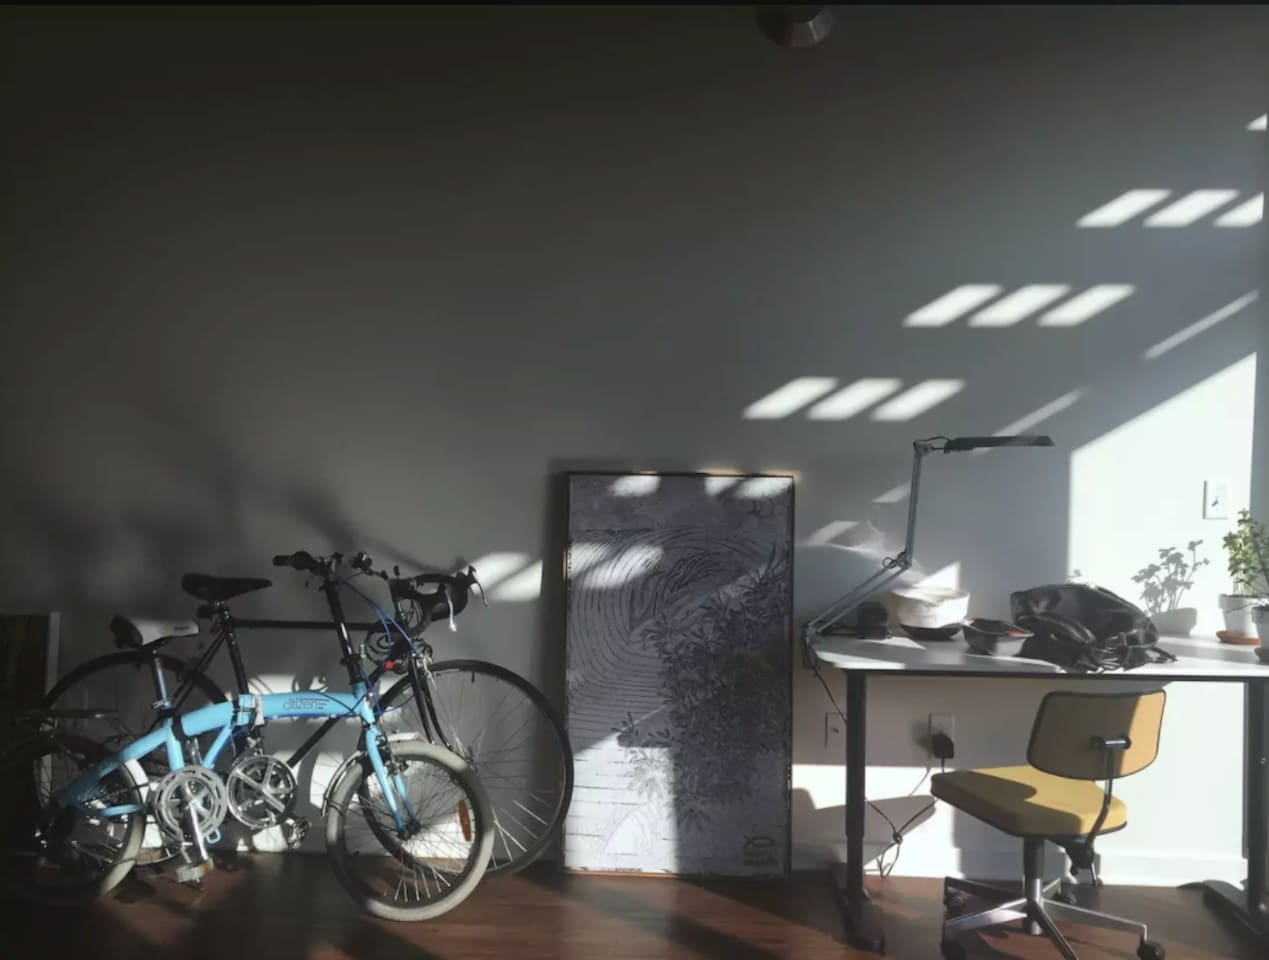 Shared space, my painting and 2 guest bikes laying in the living room.